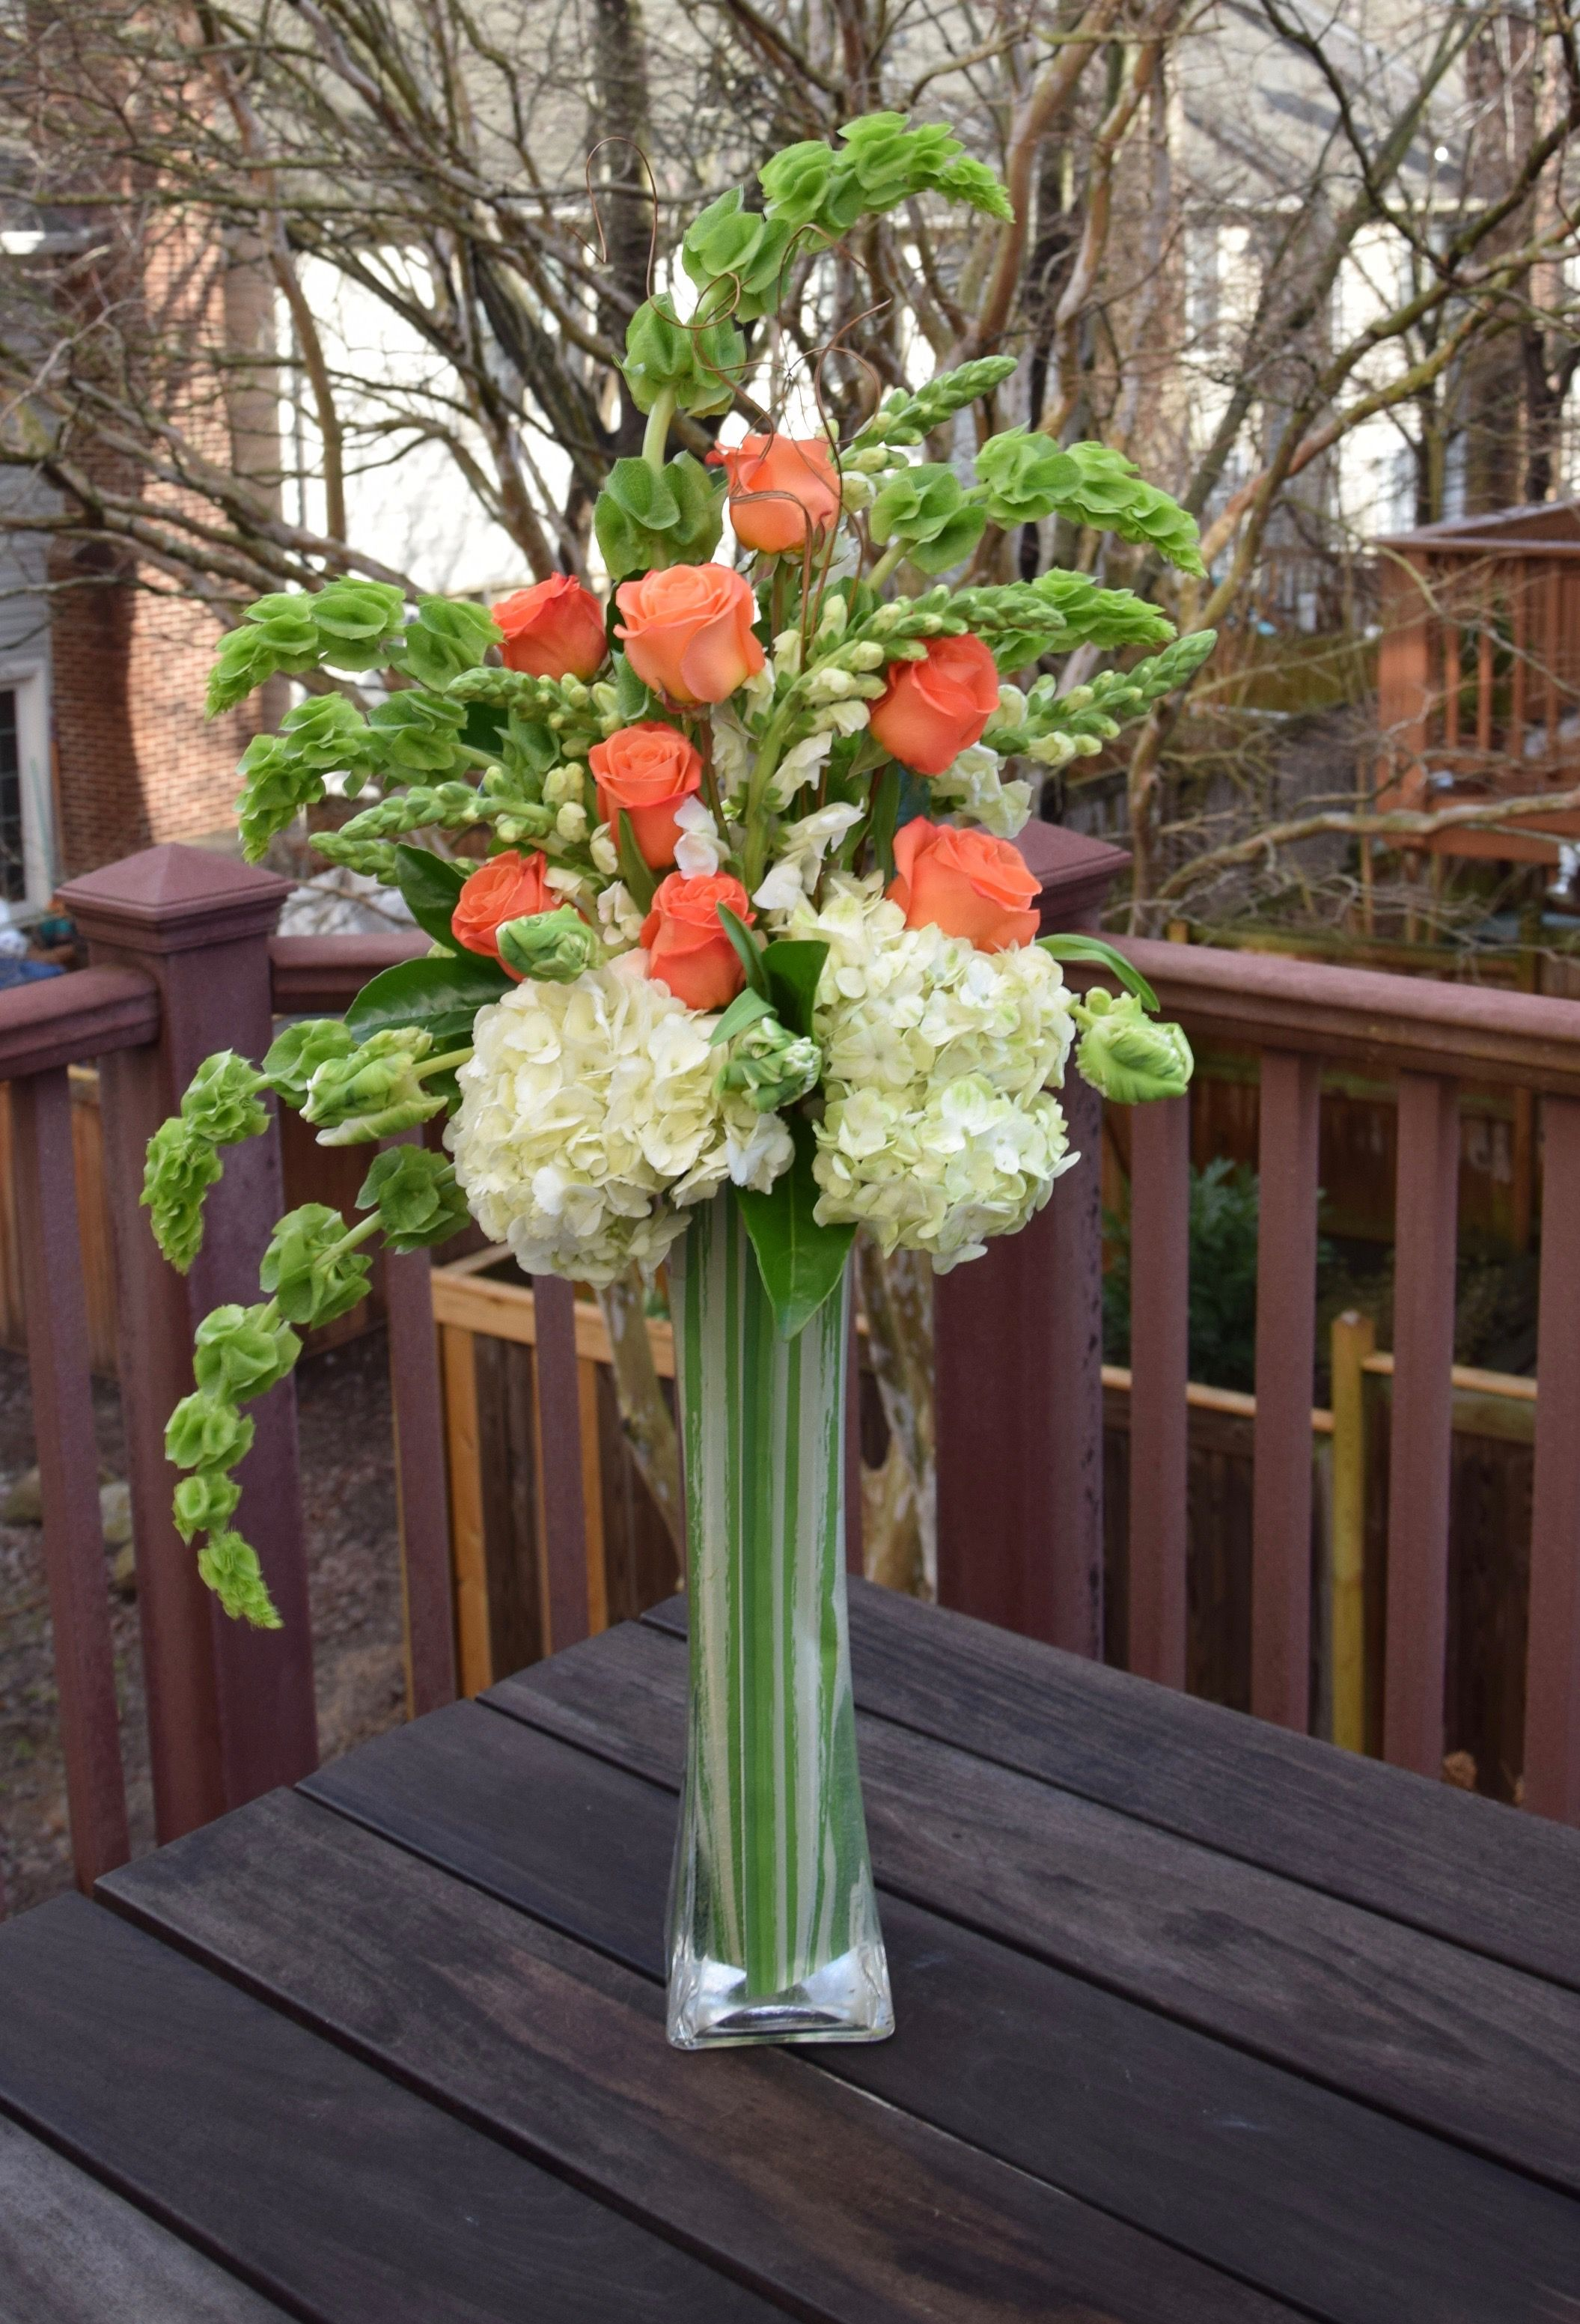 Tall Contemporary Arrangement With Hydrangeas Parrot Tulips Roses Bells Of Ire Flower Vase Arrangements Hydrangea Flower Arrangements Tall Vase Arrangements